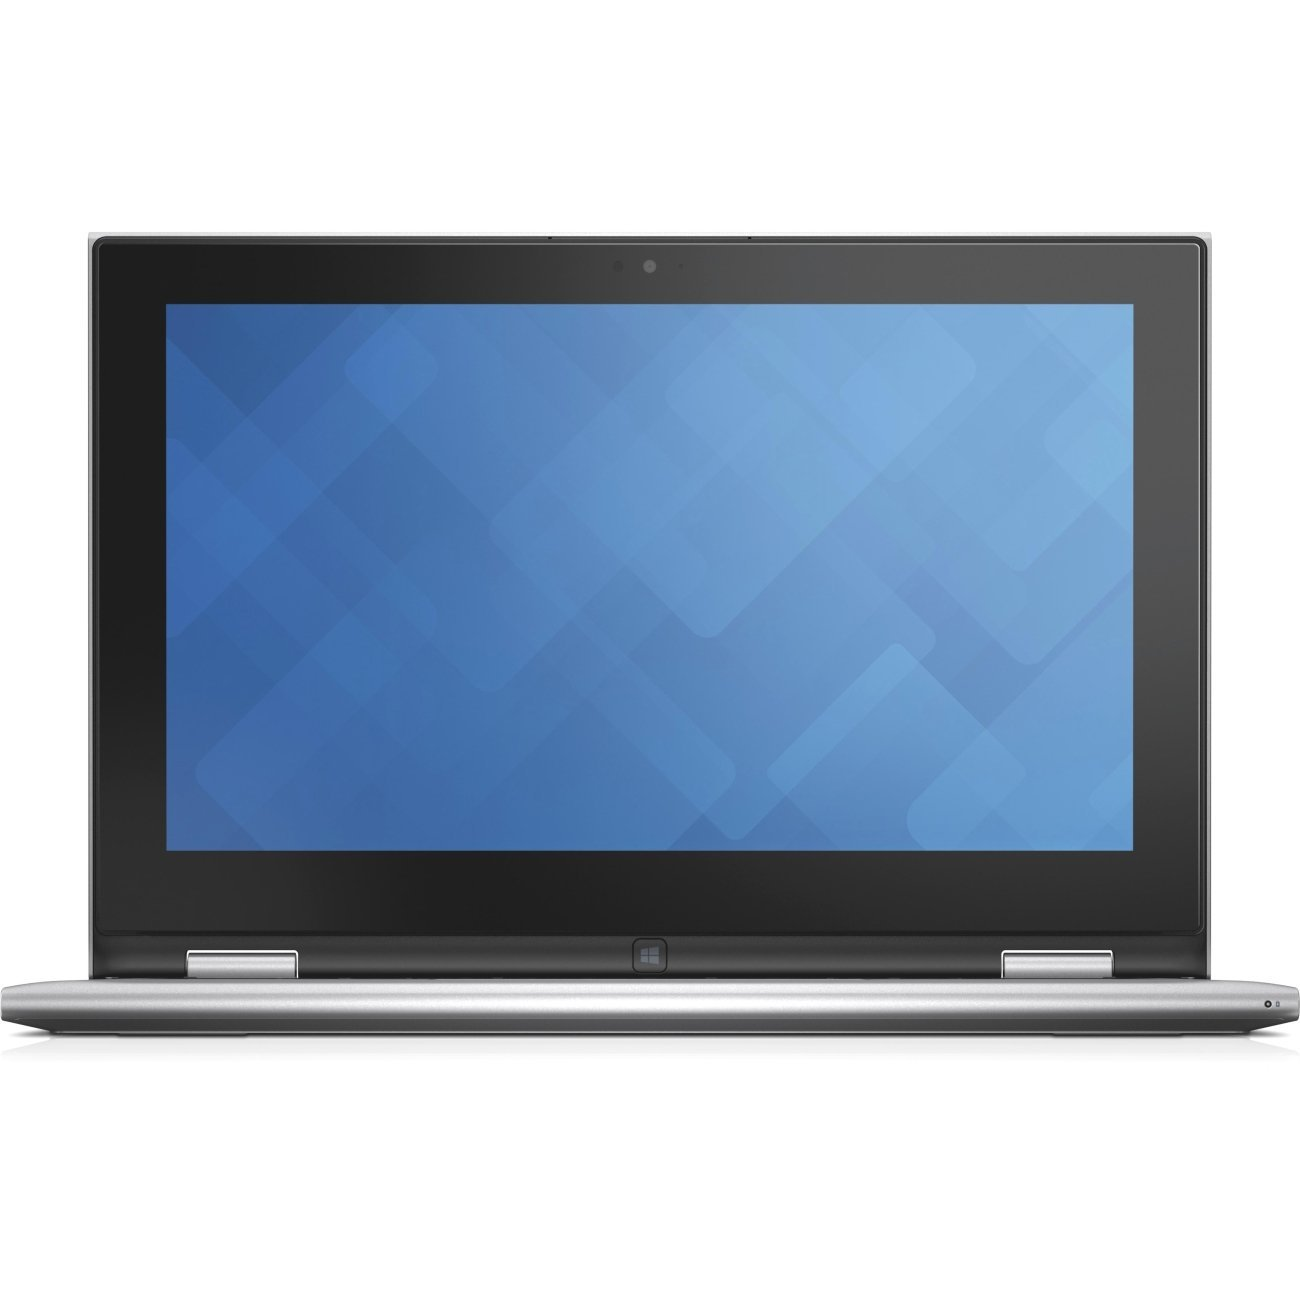 """Dell Inspiron 11 3000 11.6"""" Laptop, Touchscreen, 2-in-1, Windows 10 Home, Intel Pentium N3700 Processor, 4GB RAM, 128GB Solid State Drive"""